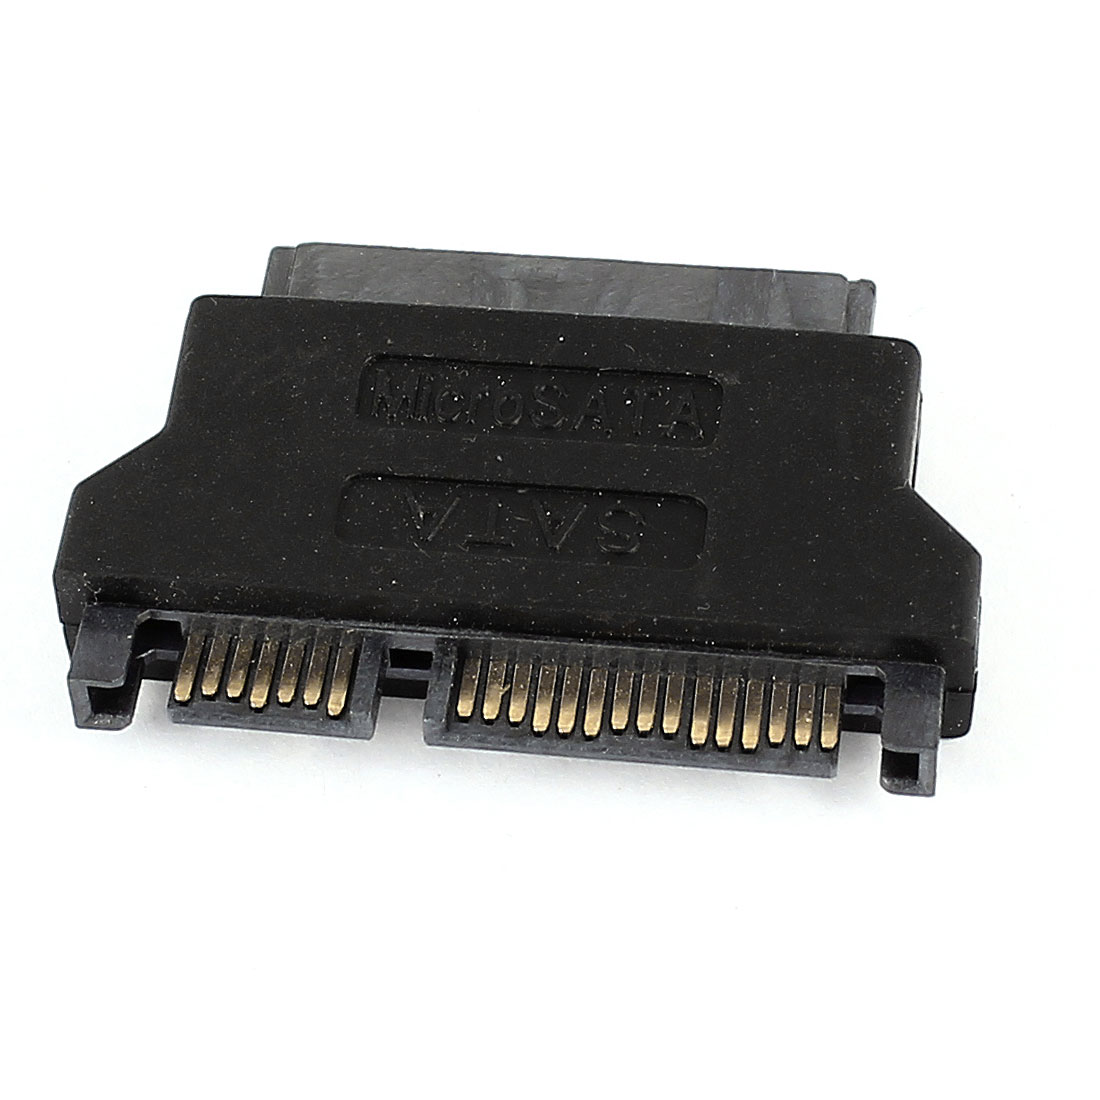 "1.8"" Micro SATA Female to 7+15Pin 2.5"" SATA Male HDD SSD Connector Adapter"